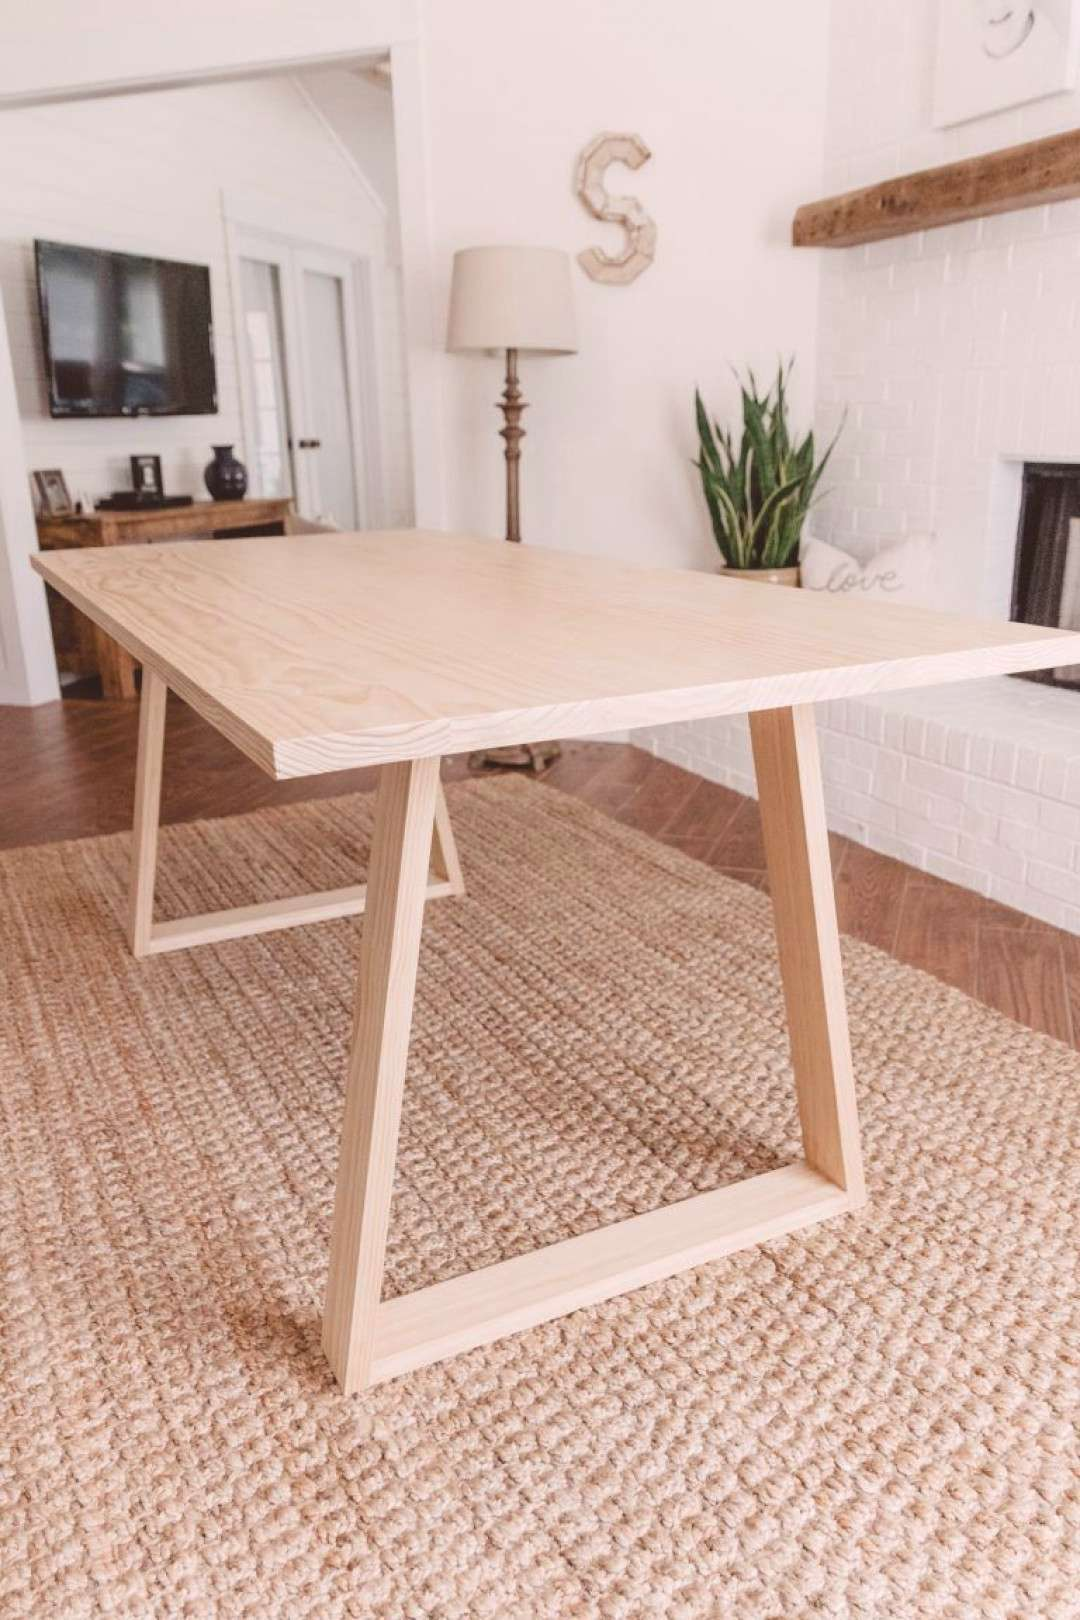 Learn how to build this DIY Modern Dining Table – Woodbrew boho, kitchen table, Scandinavian